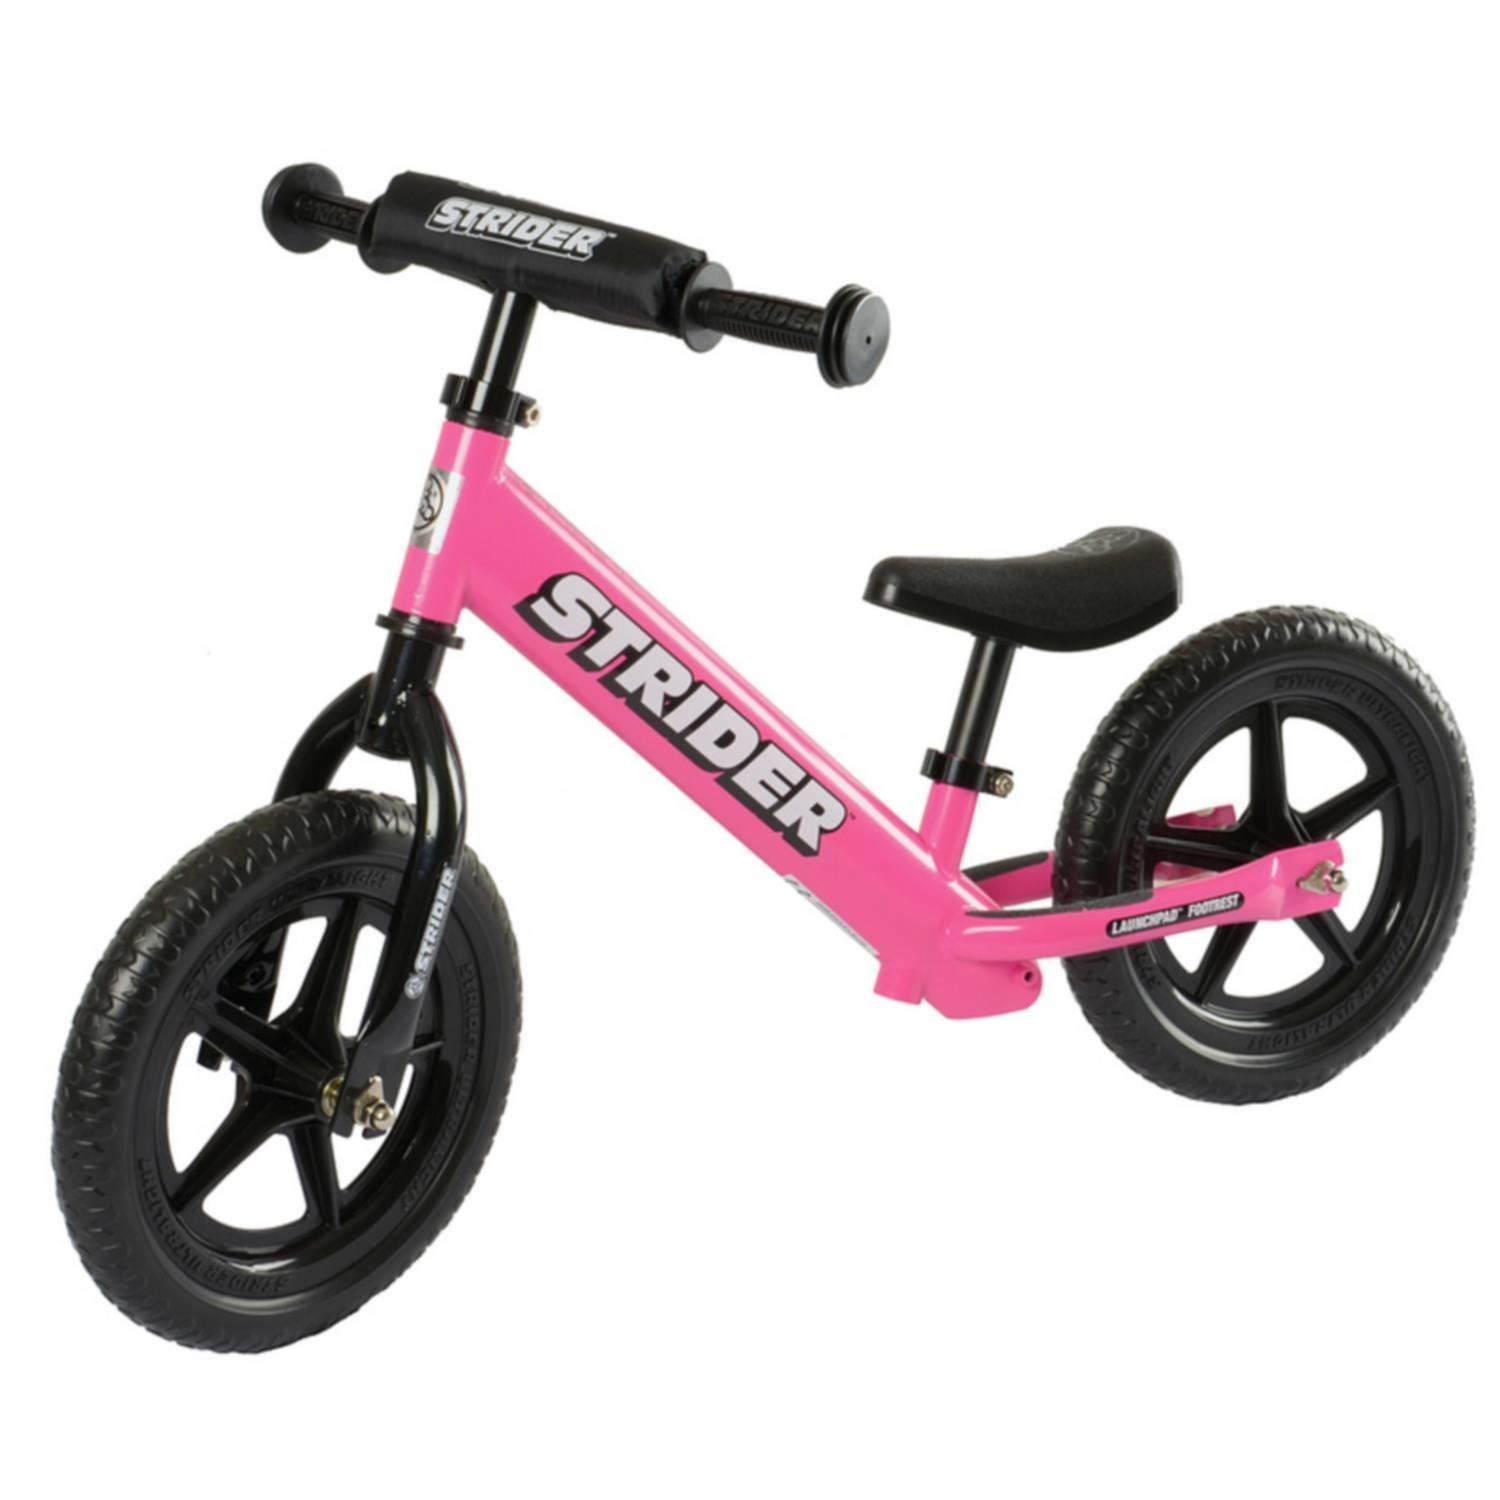 Strider - 12 Sport Balance Bike, Ages 18 Months to 5 Years, Black Yana Shiki USA ST-S4BK